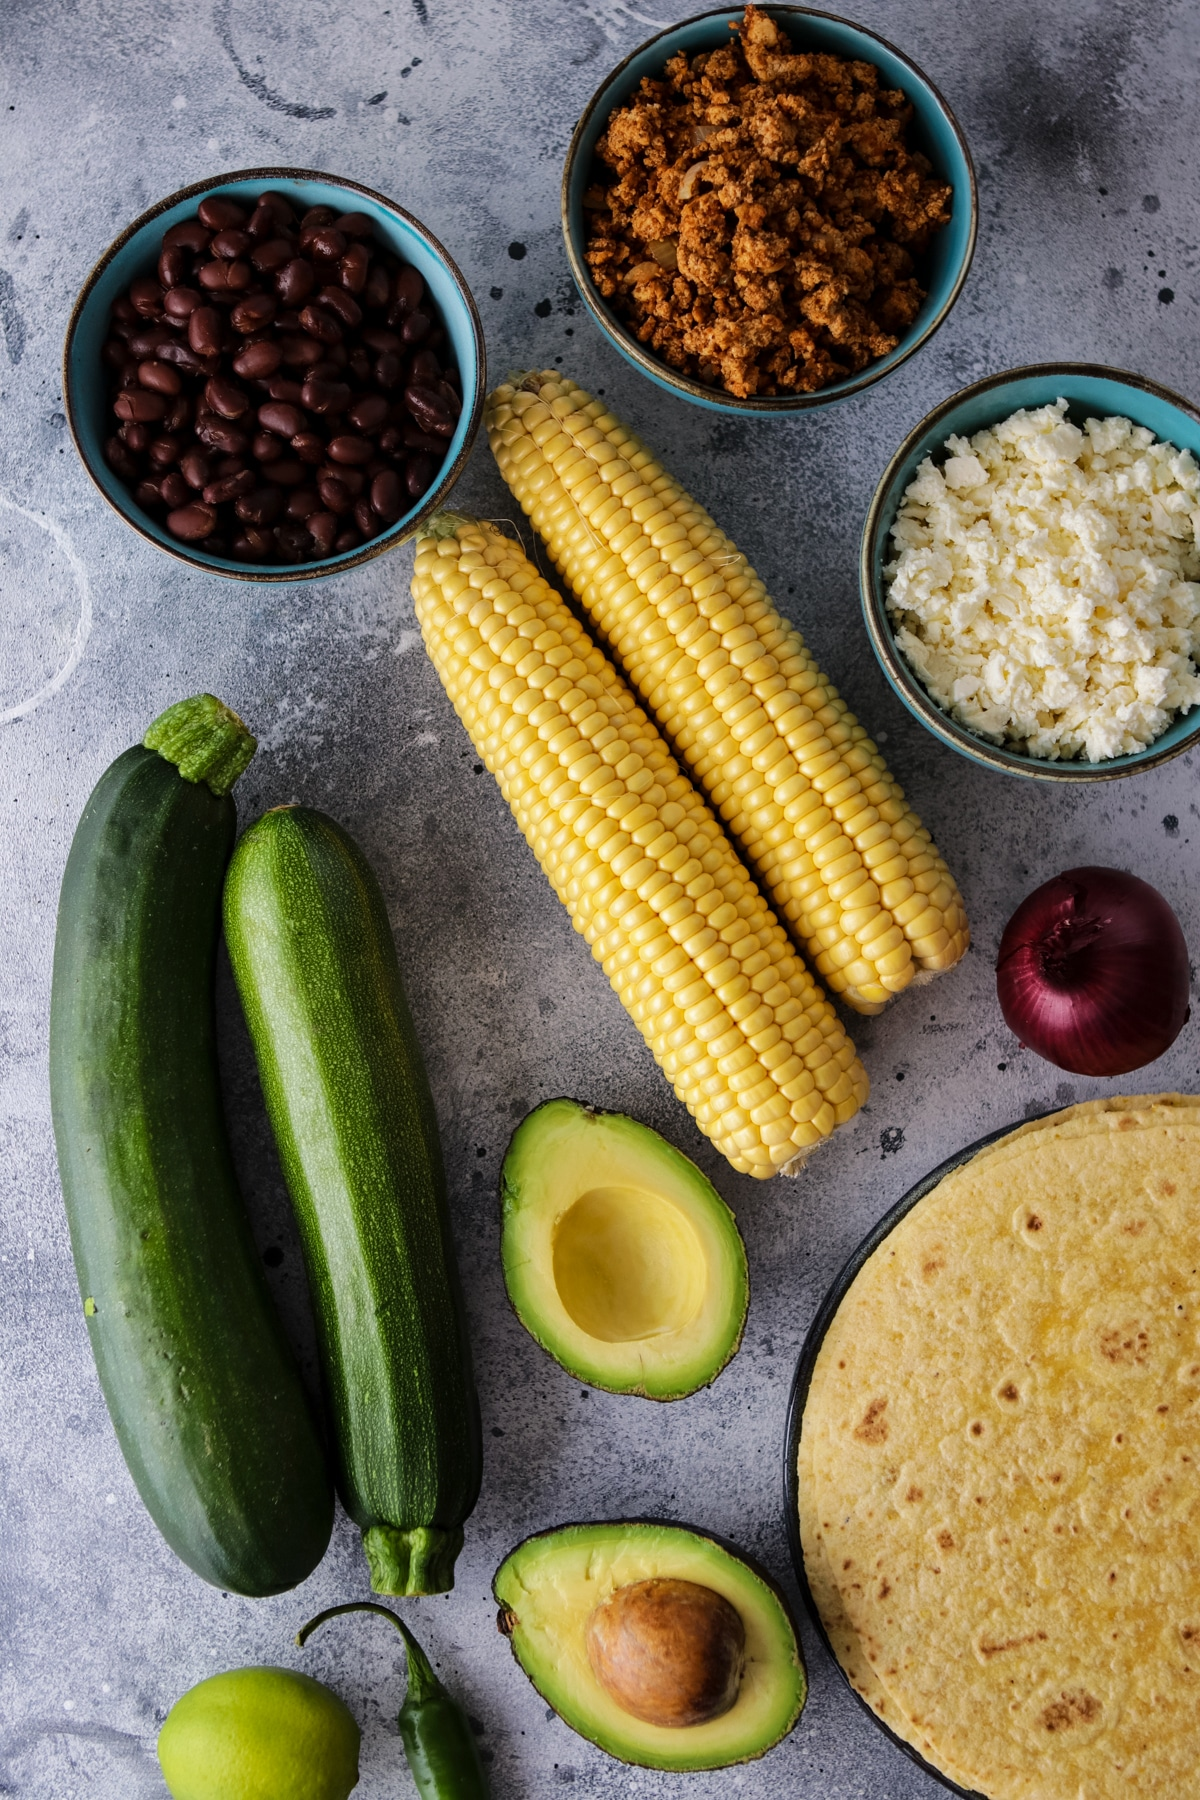 Ingredients for grilled tacos including zucchini, corn, avocado, tempeh taco meat, feta cheese, black beans, tortillas, etc.